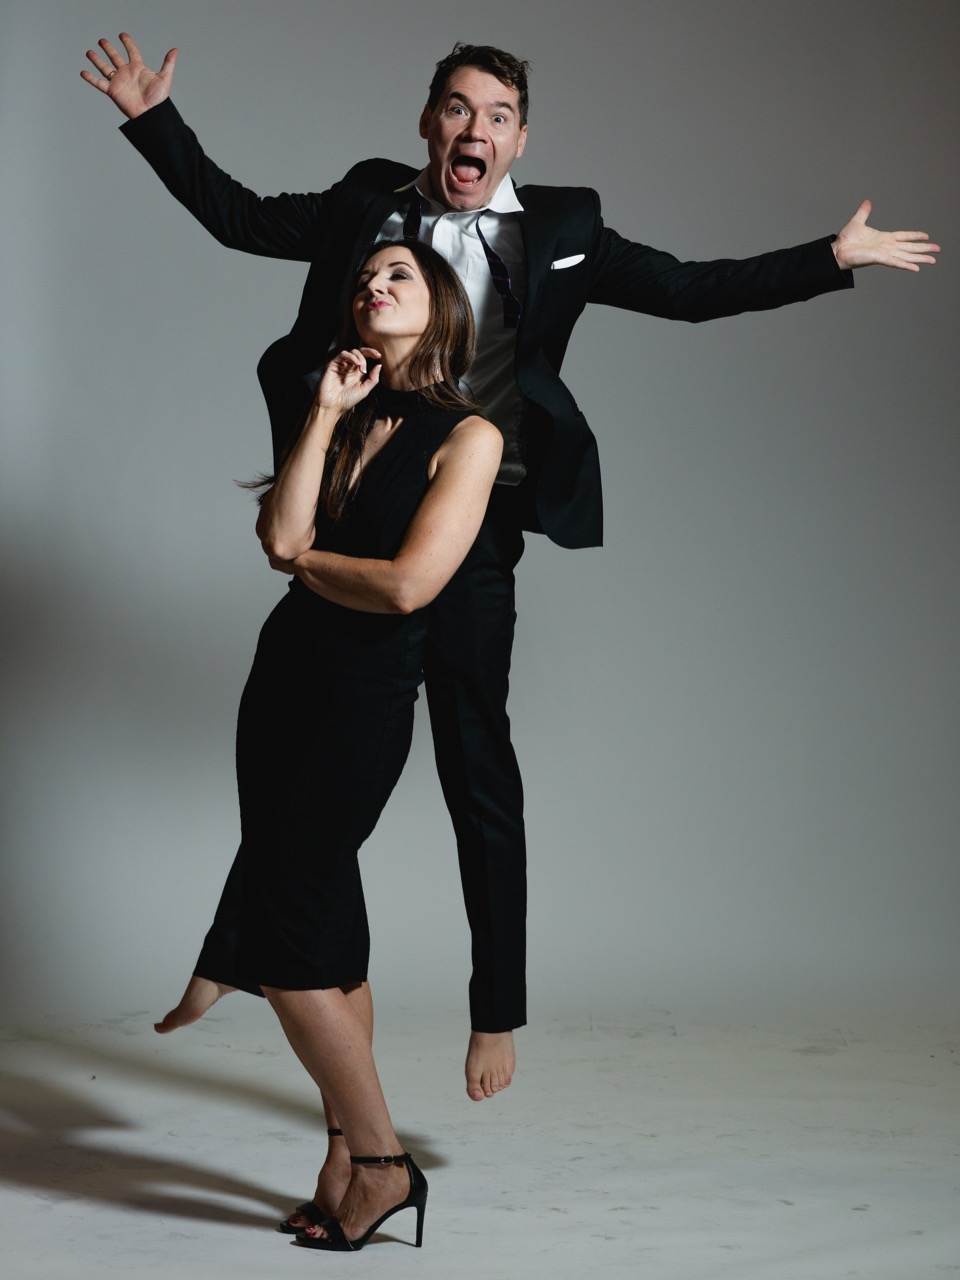 live theater Charleston 34 west power of love actor jeff querin beth curley.jpg